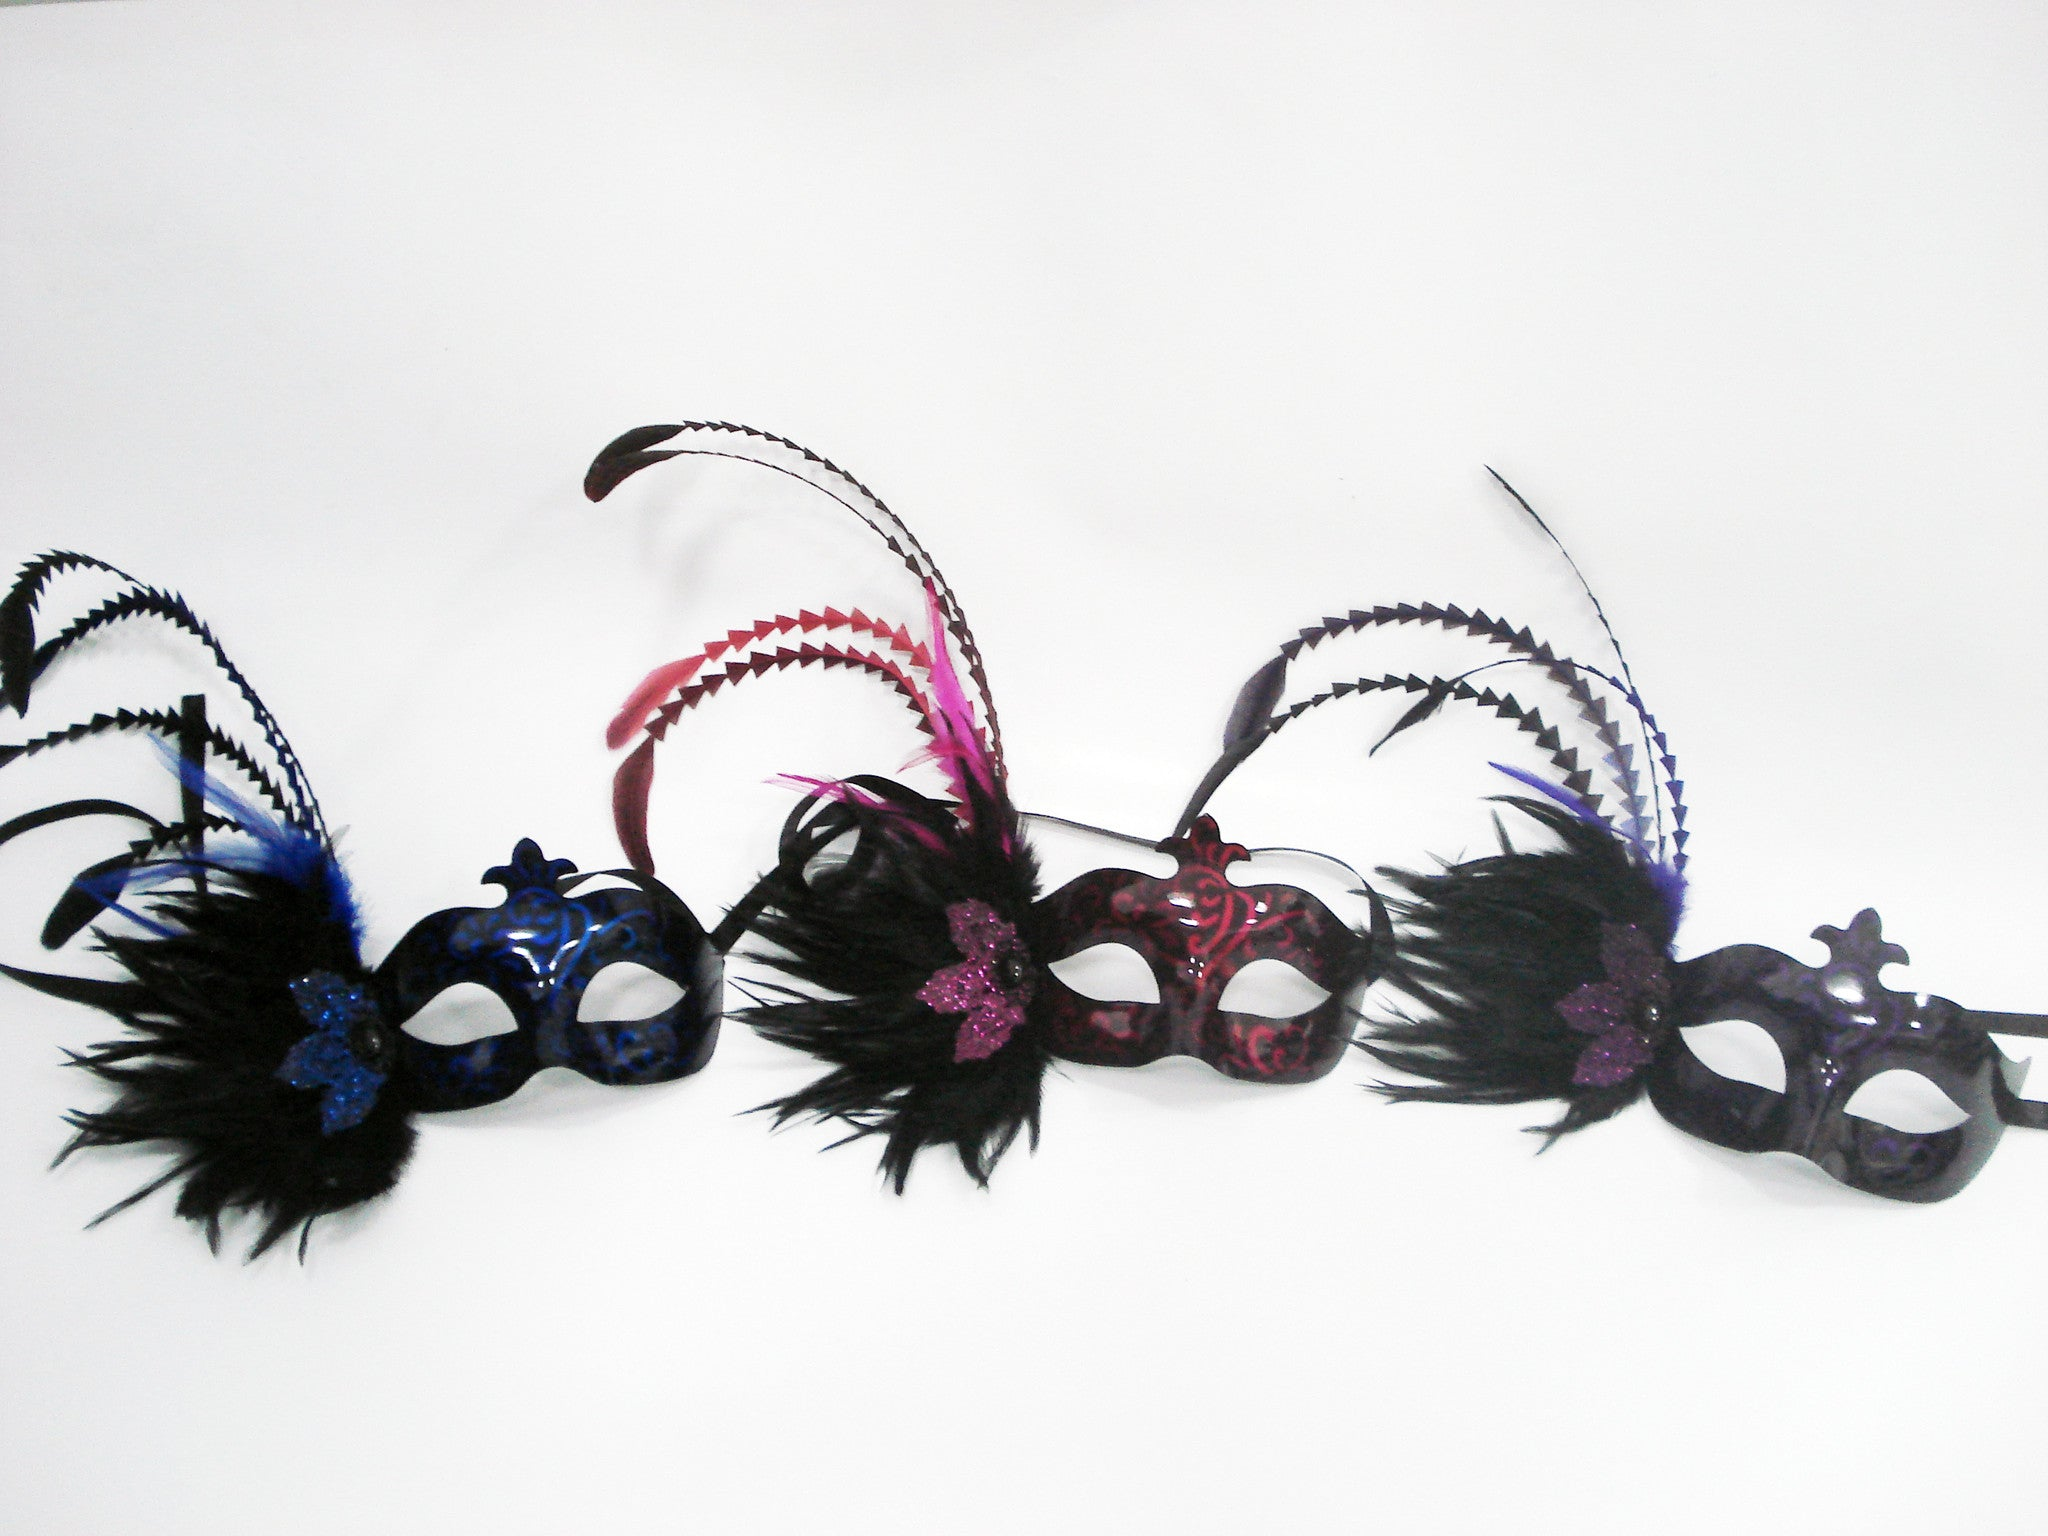 MK129 - Set of 3 Assorted Masks with Feathers - TAMARR SALE  50% OFF SOLD AS SETS